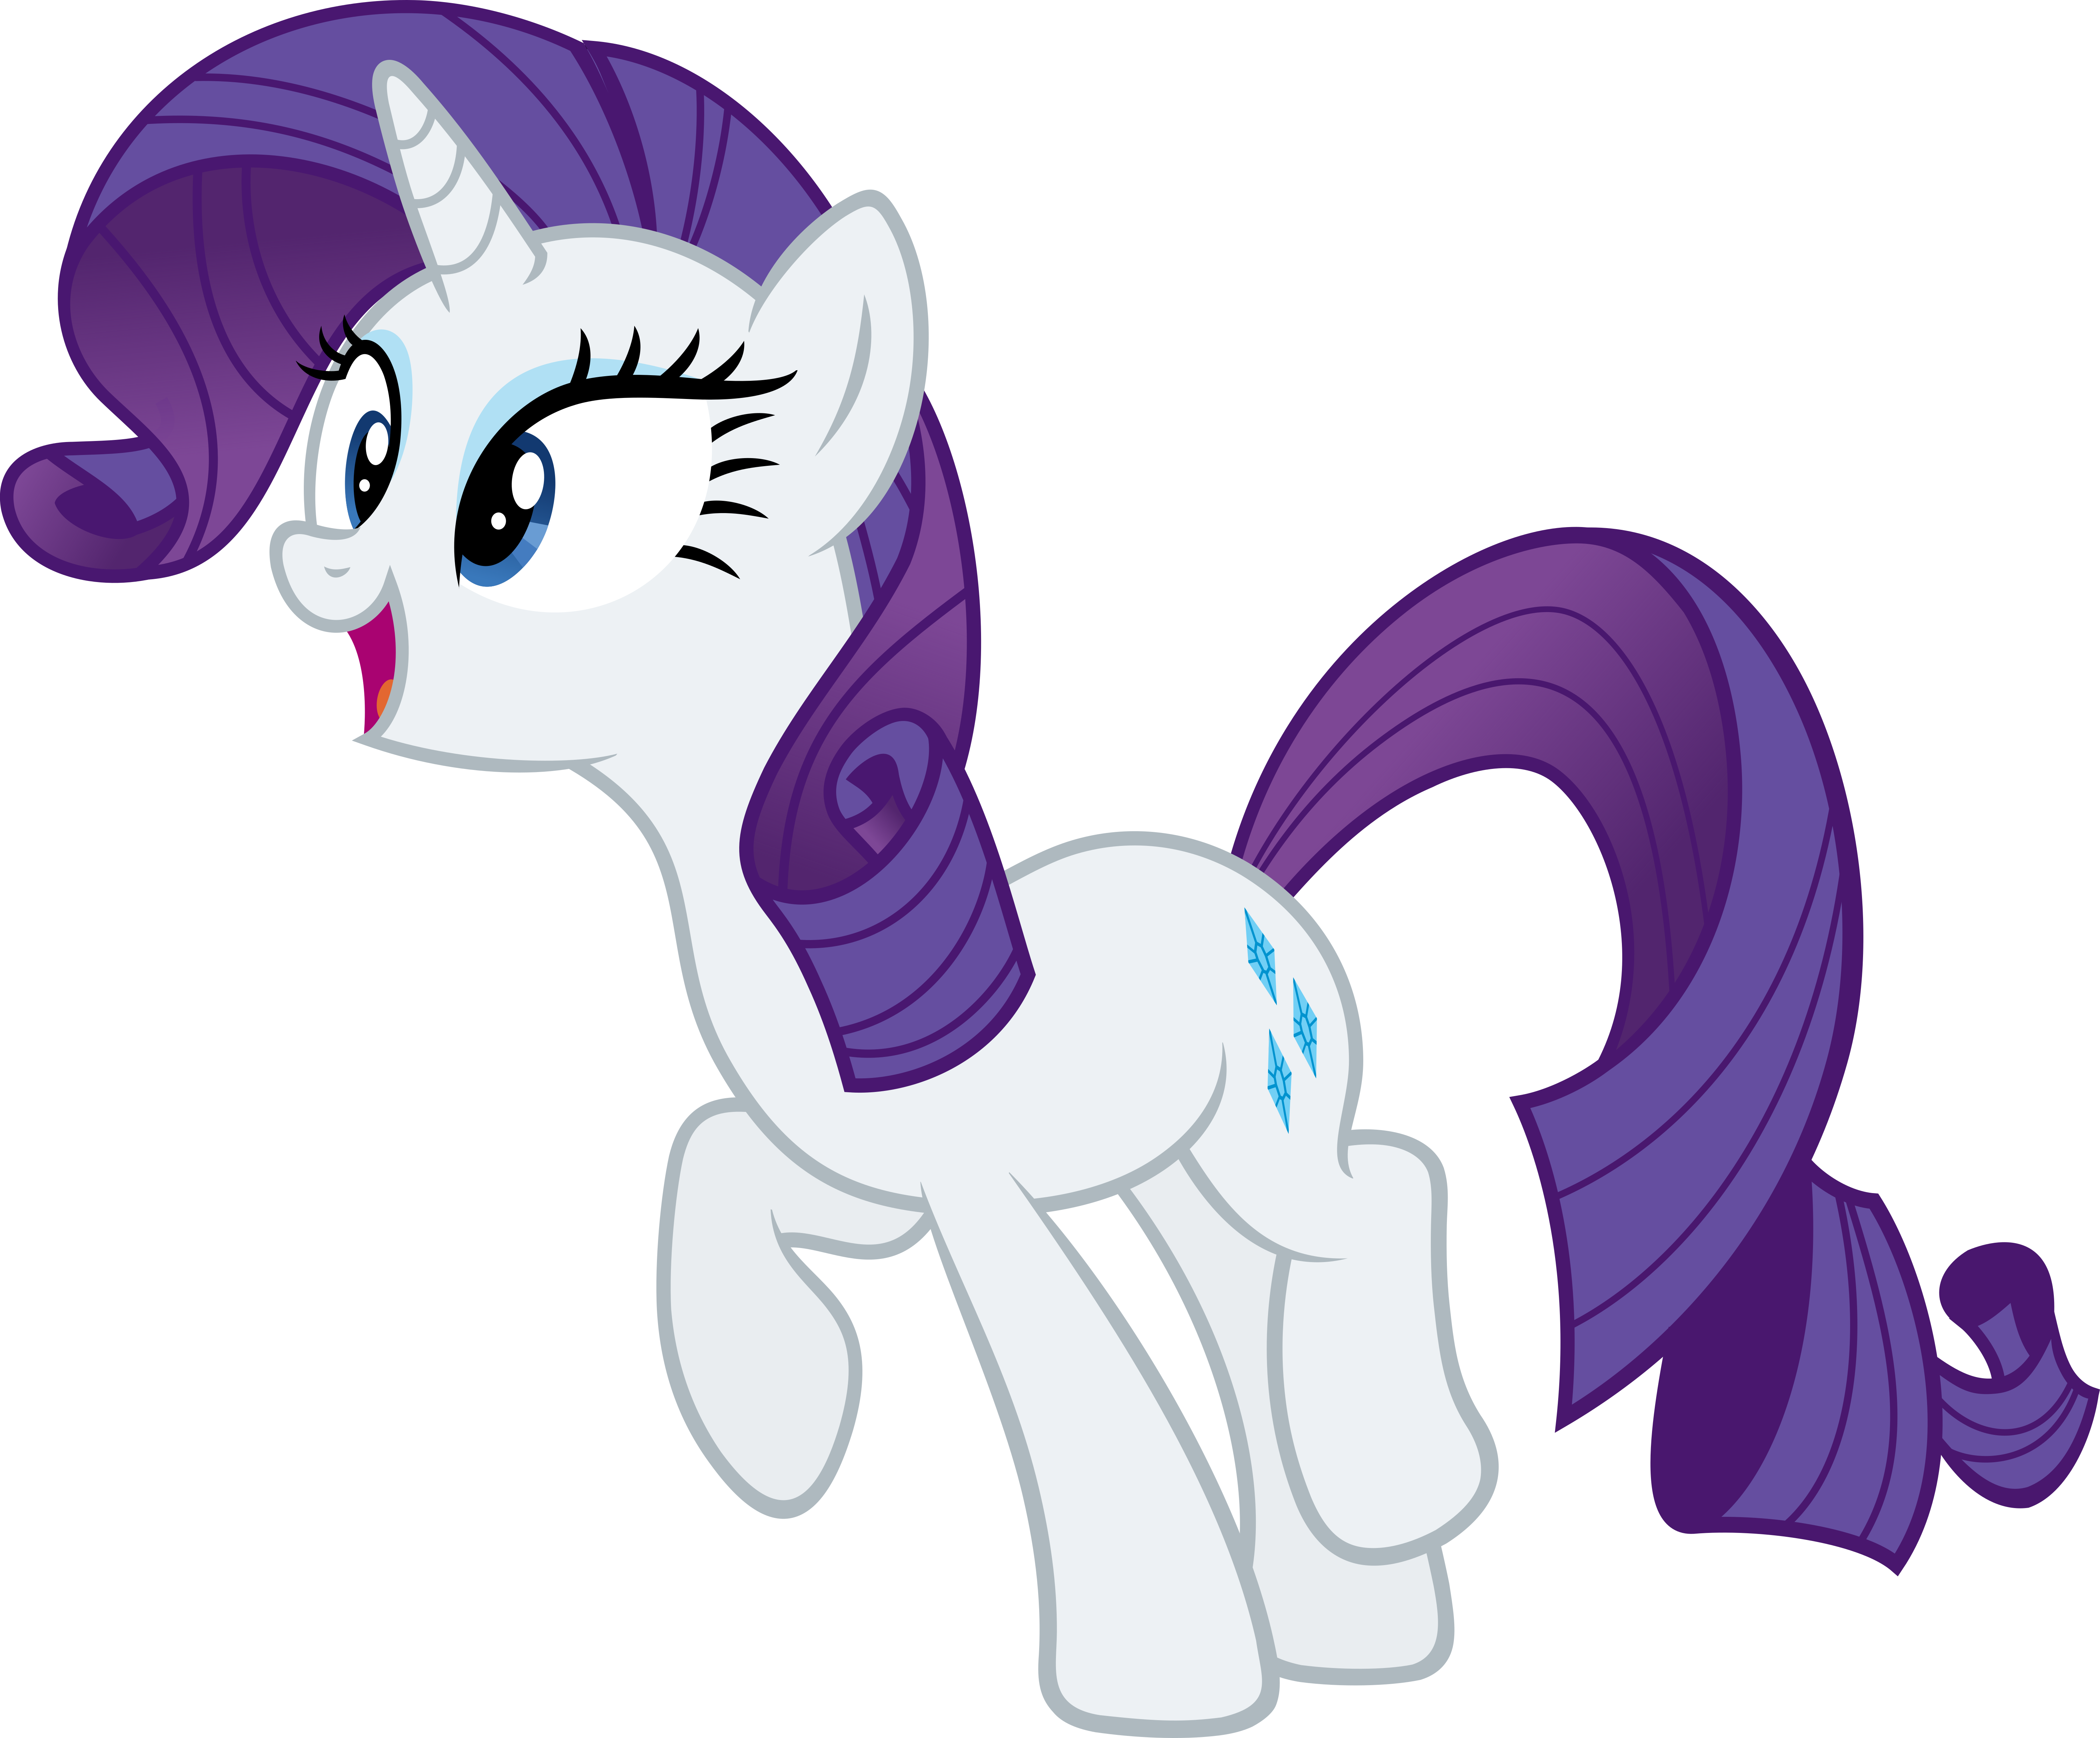 fashion horse is excited by slb94 on deviantart